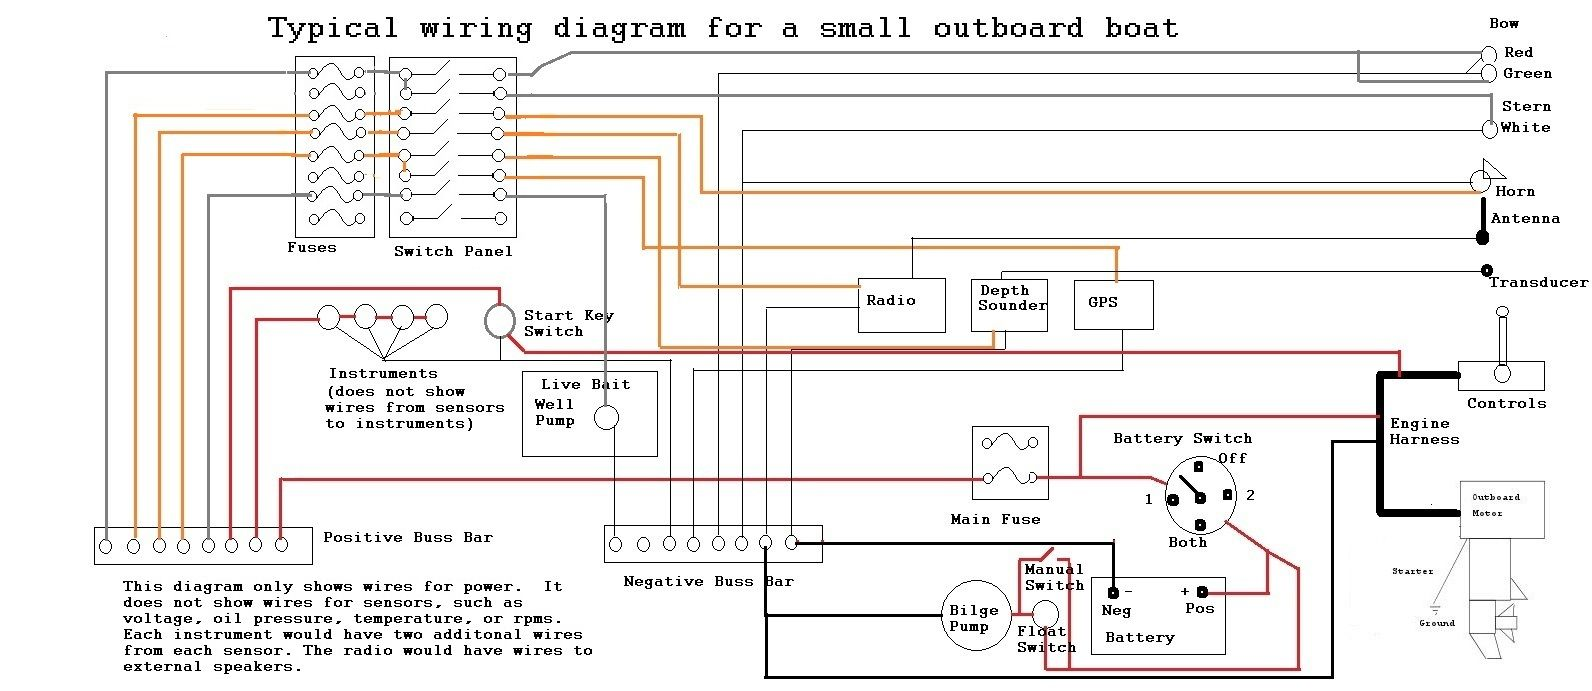 Wiring Diagram - small outboard Boat Wiring, Boat Restoration, Aluminum Boat,  Circuit Diagram